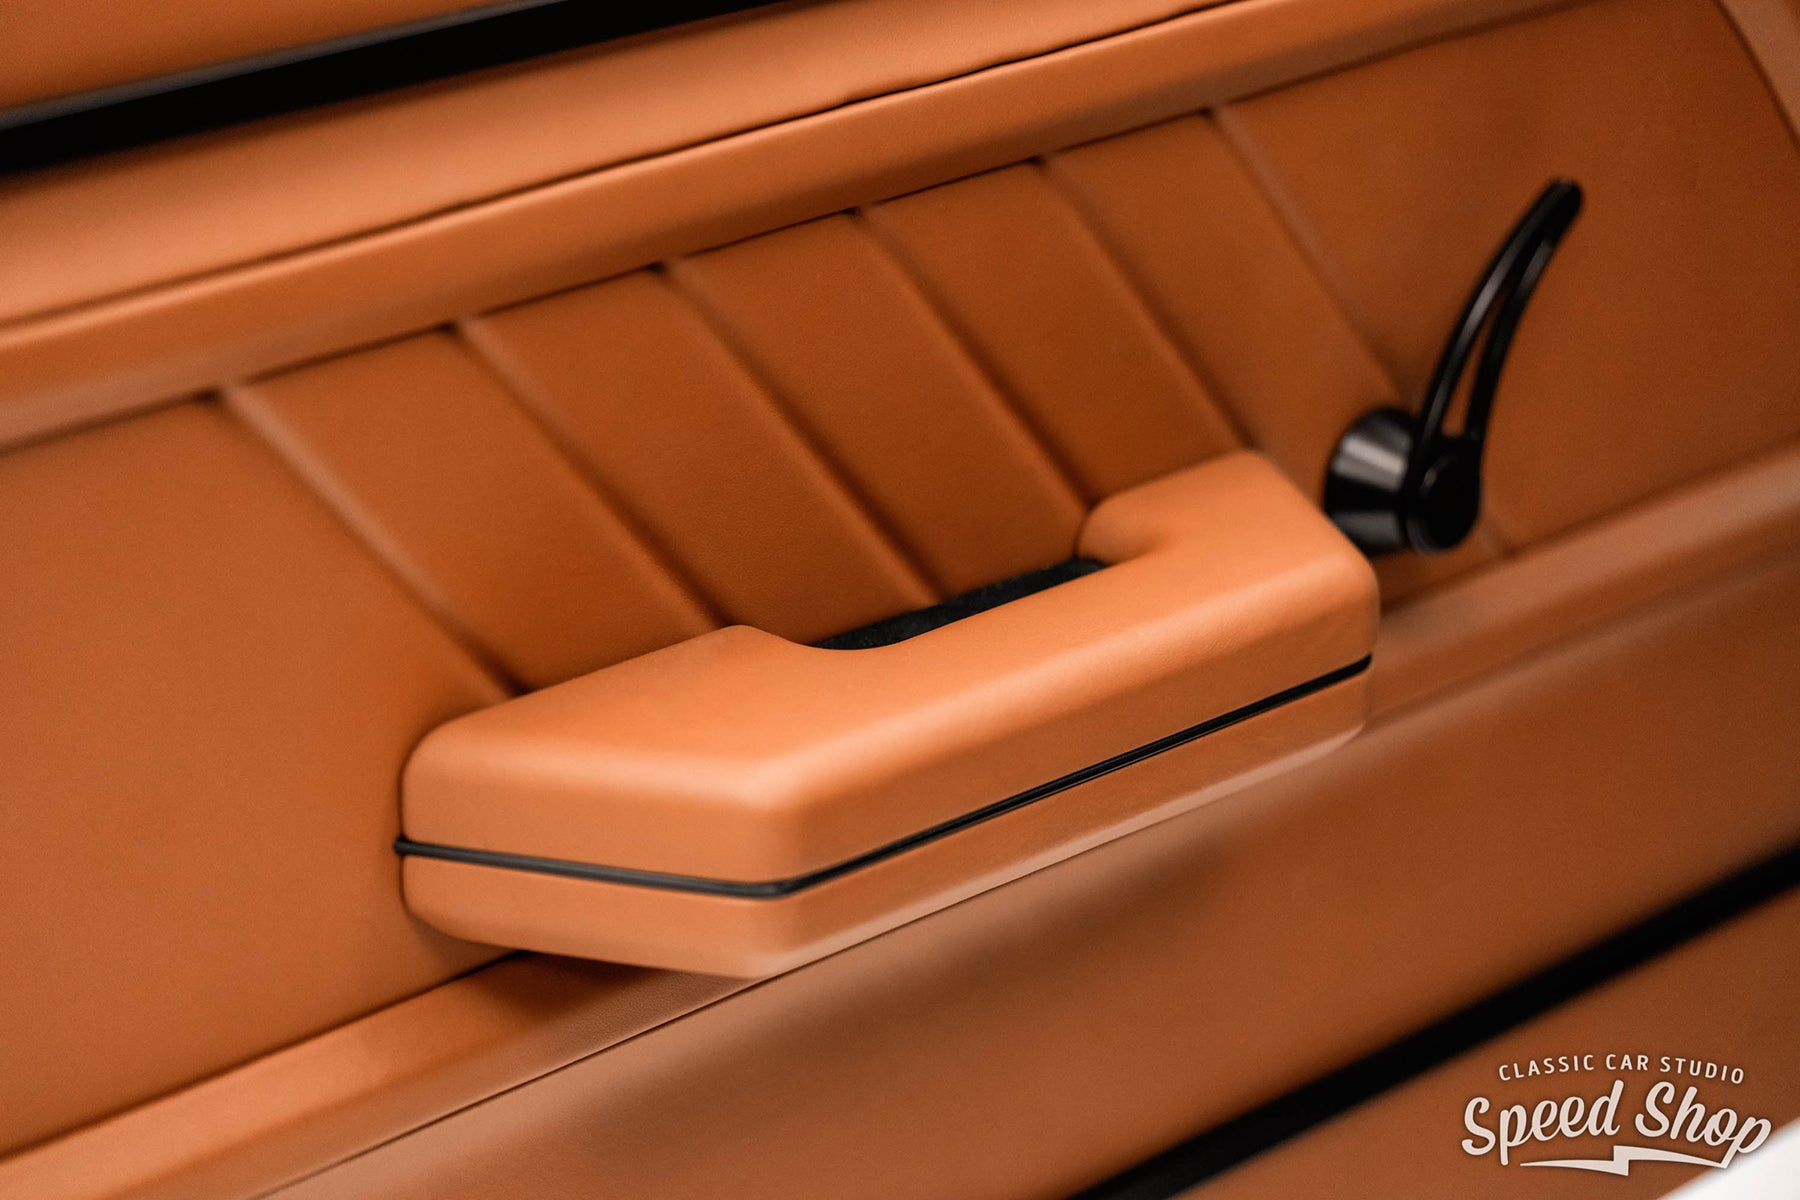 Classic Car Studio 1971 Chevelle with Relicate Butter Rum Leather Interior Door Panel